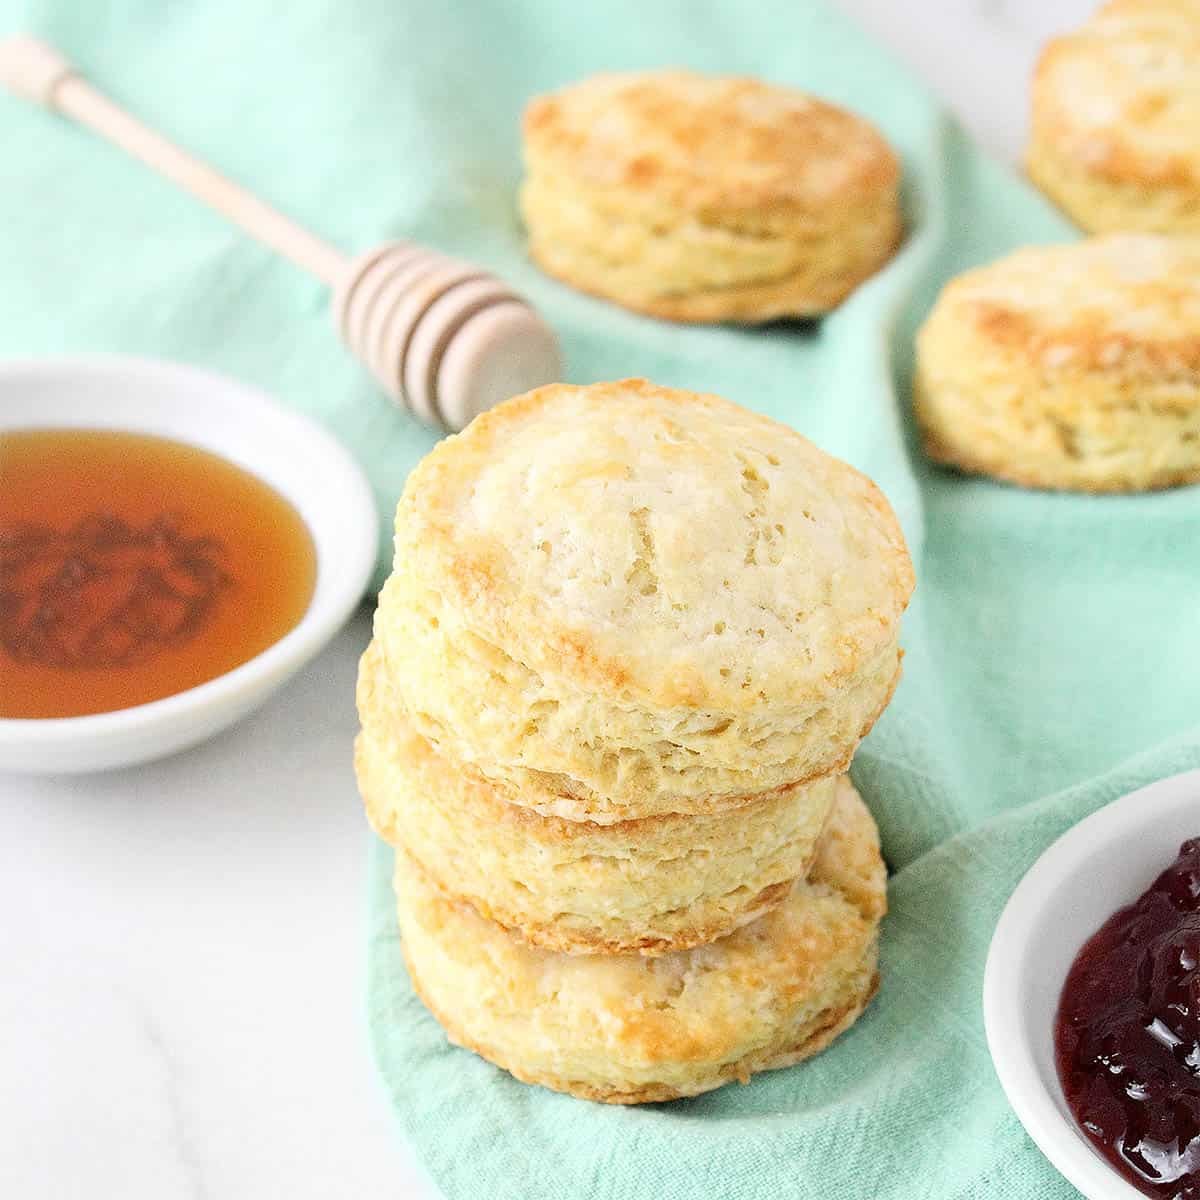 Stack of biscuits on green napkin with honey and jam beside them.